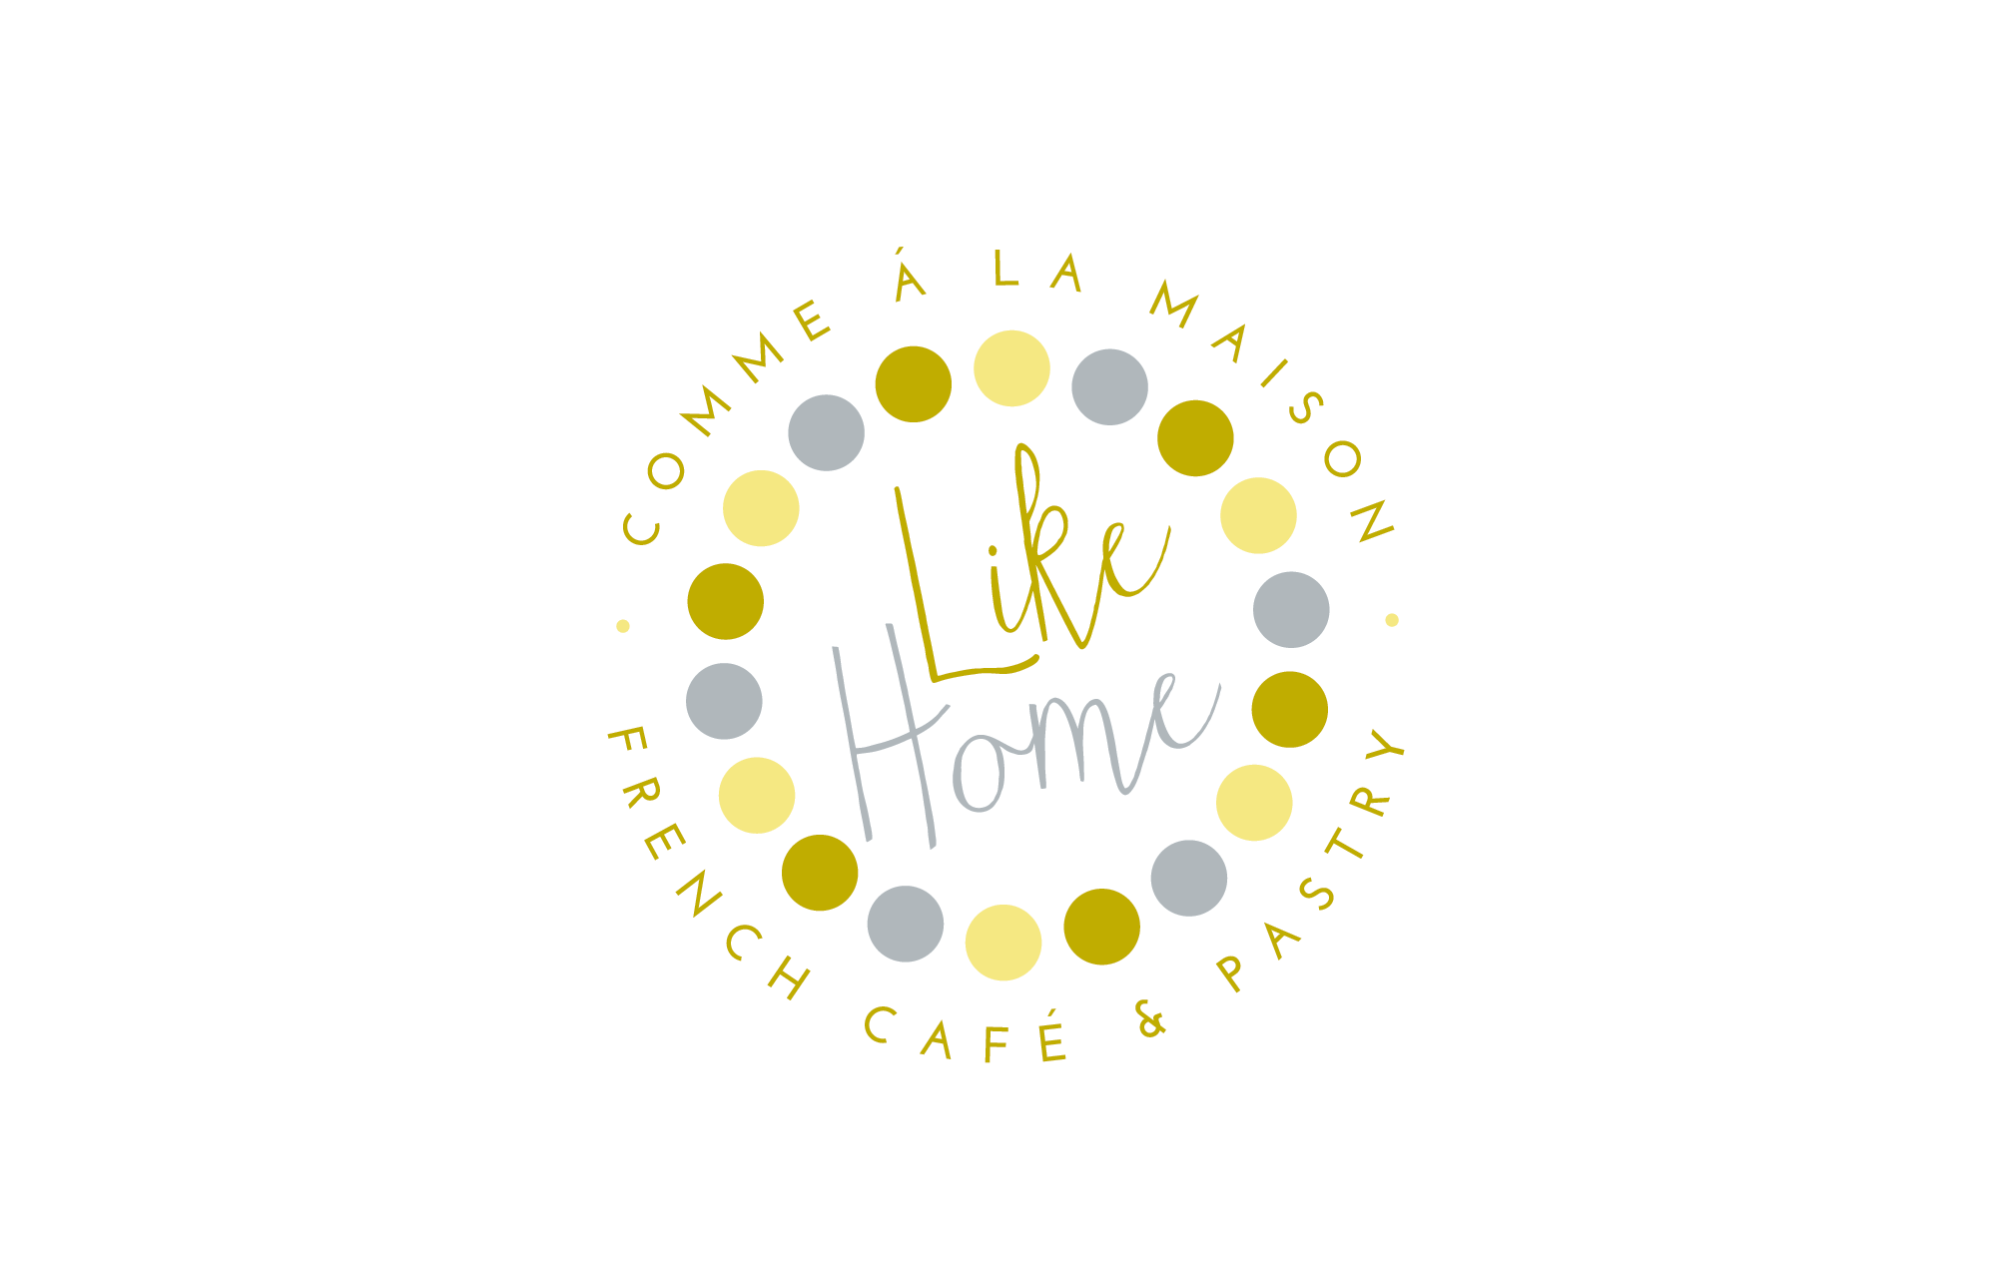 Logo & Branding Package for a St. Louis, MO Café & pastry Shoppe